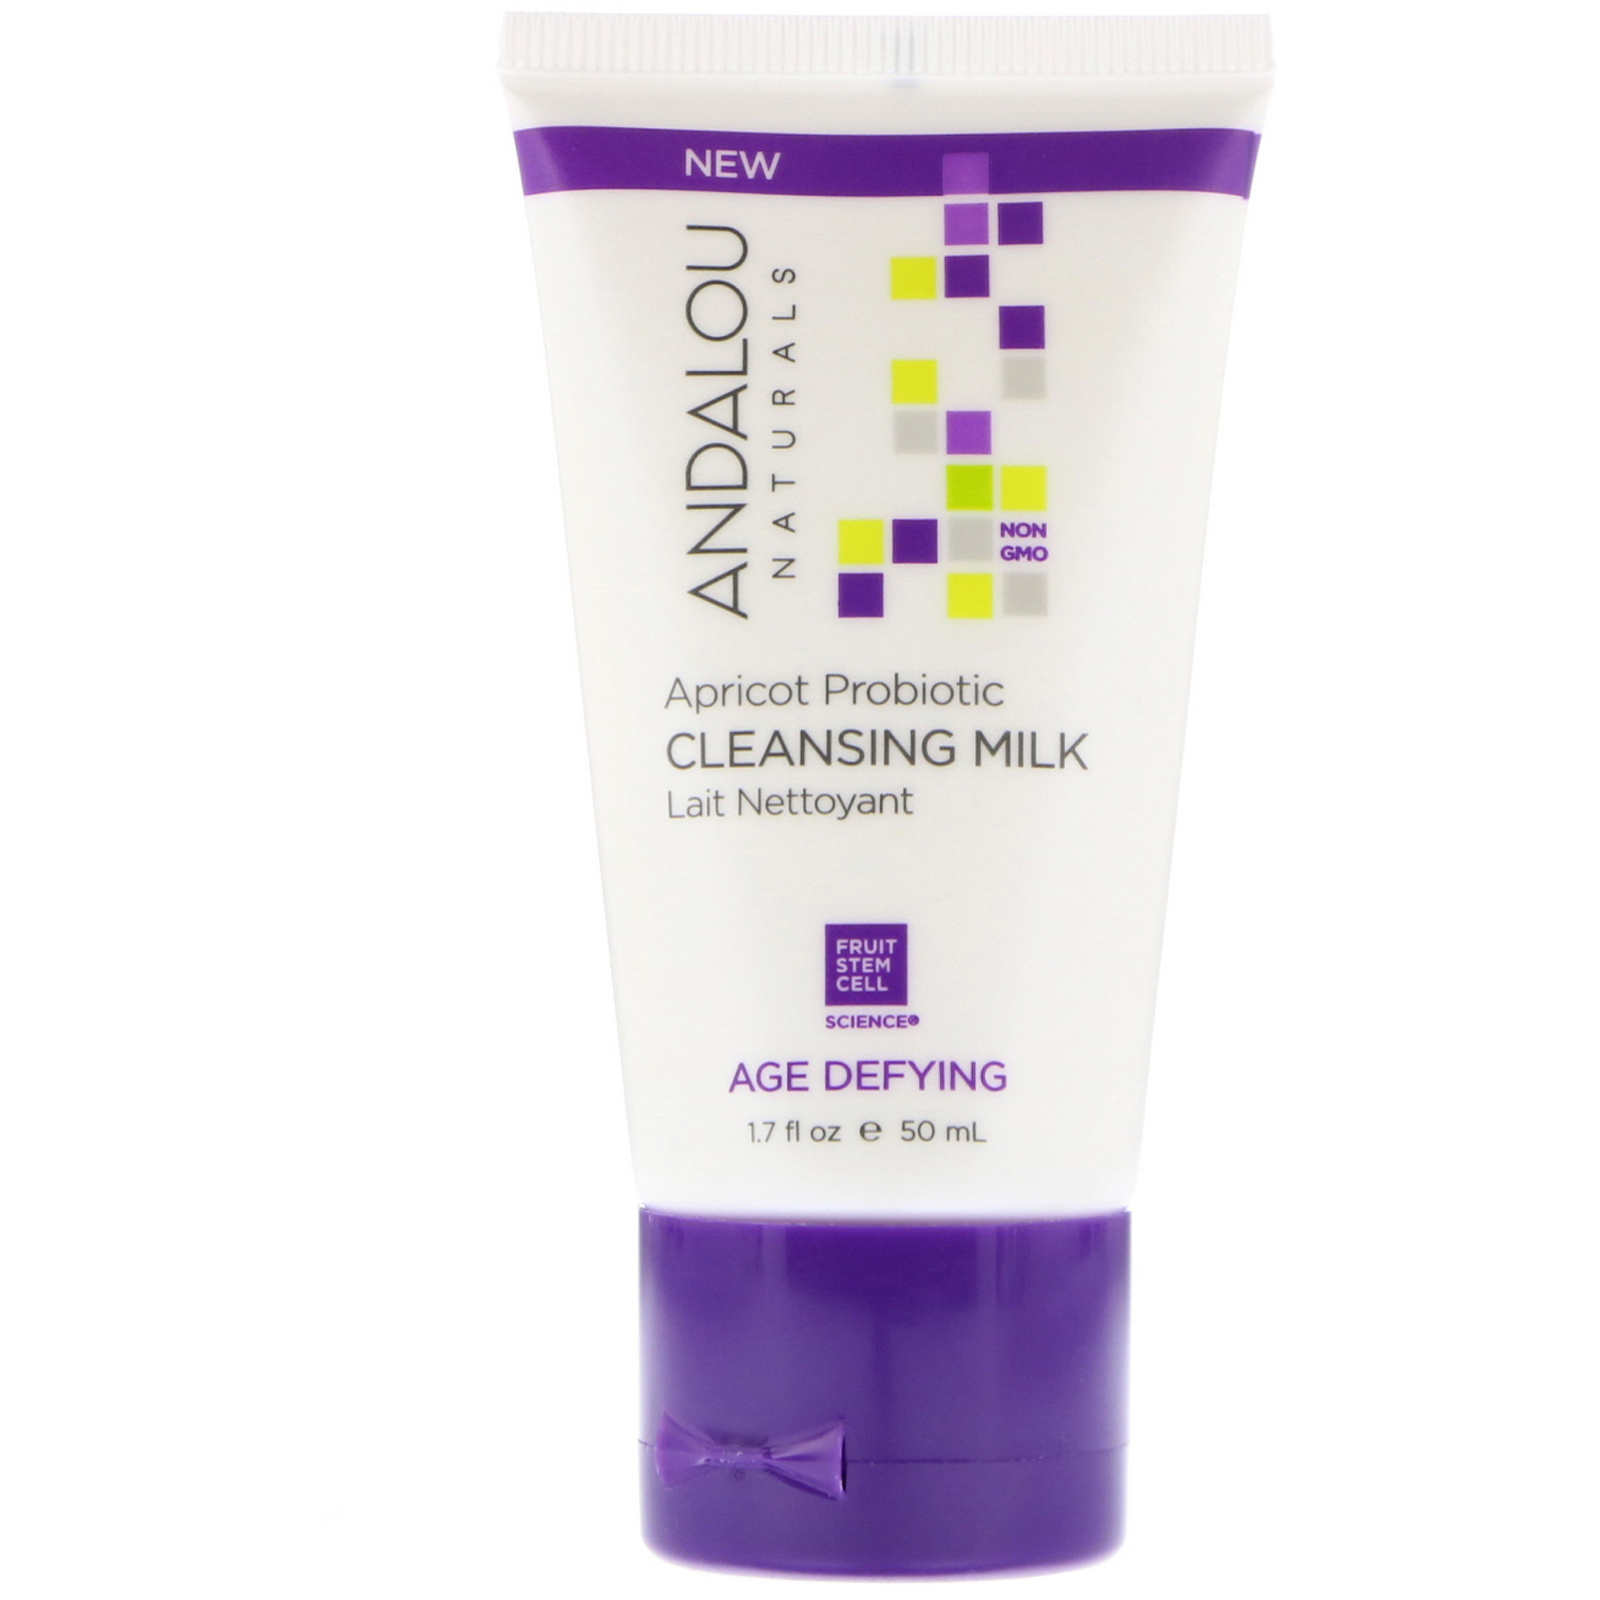 Age-Dyfing Apricot Probiotic Cleansing Milk - 6 fl. oz. by Andalou Naturals (pack of 1) Foaming Face Wash Rose Geranium - 6 fl. oz. by Kosmatology (pack of 2)